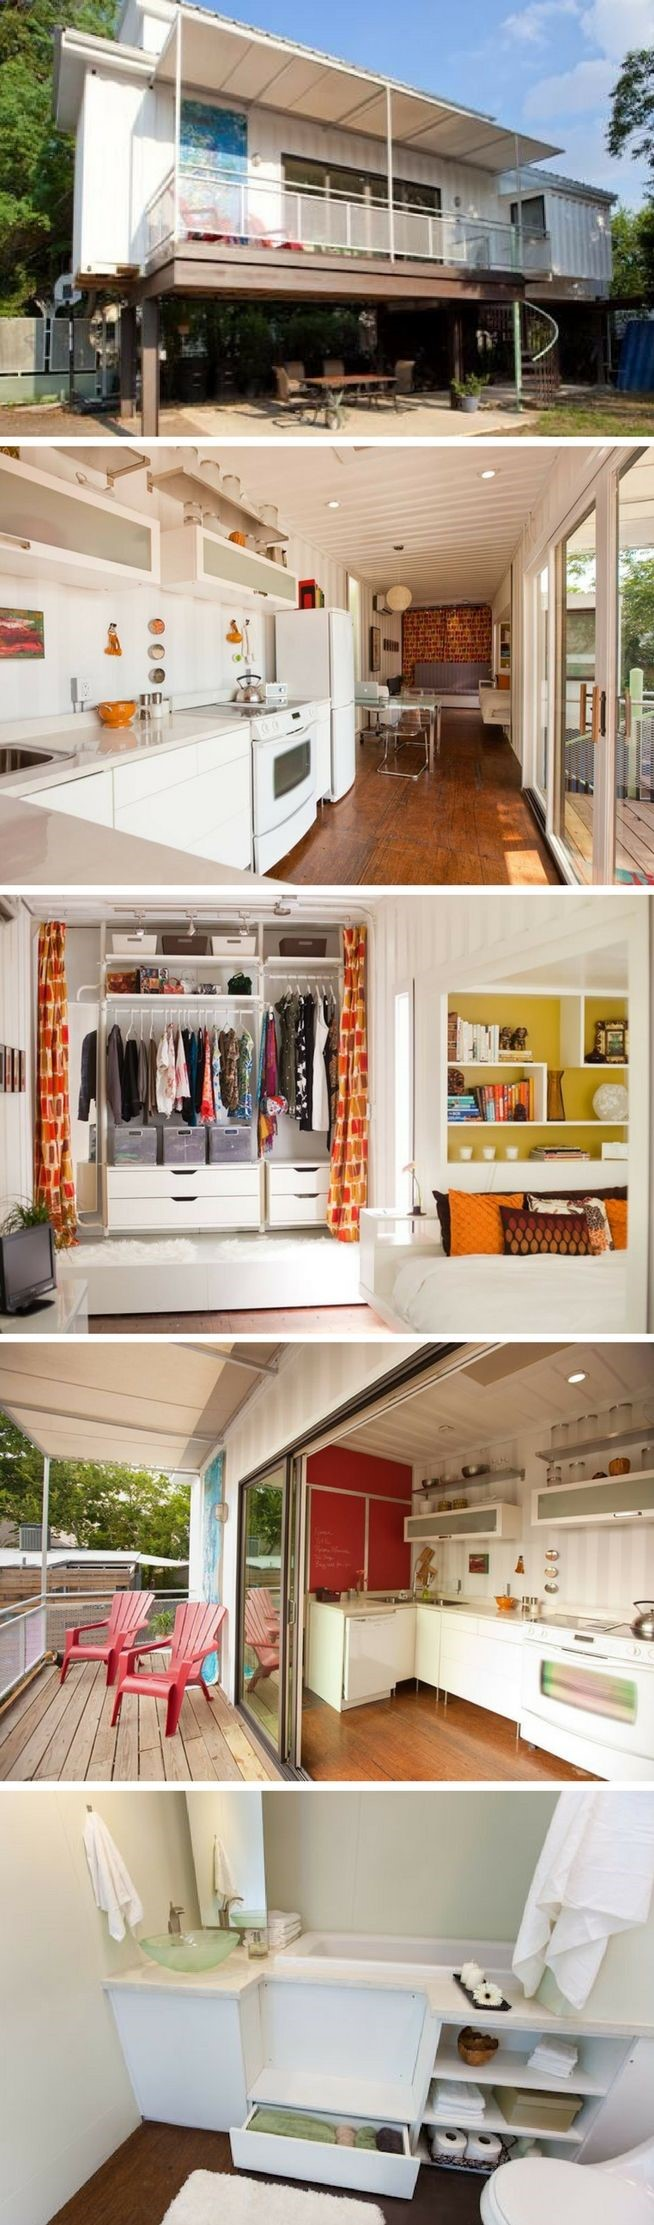 Container house container house uber shipping container home